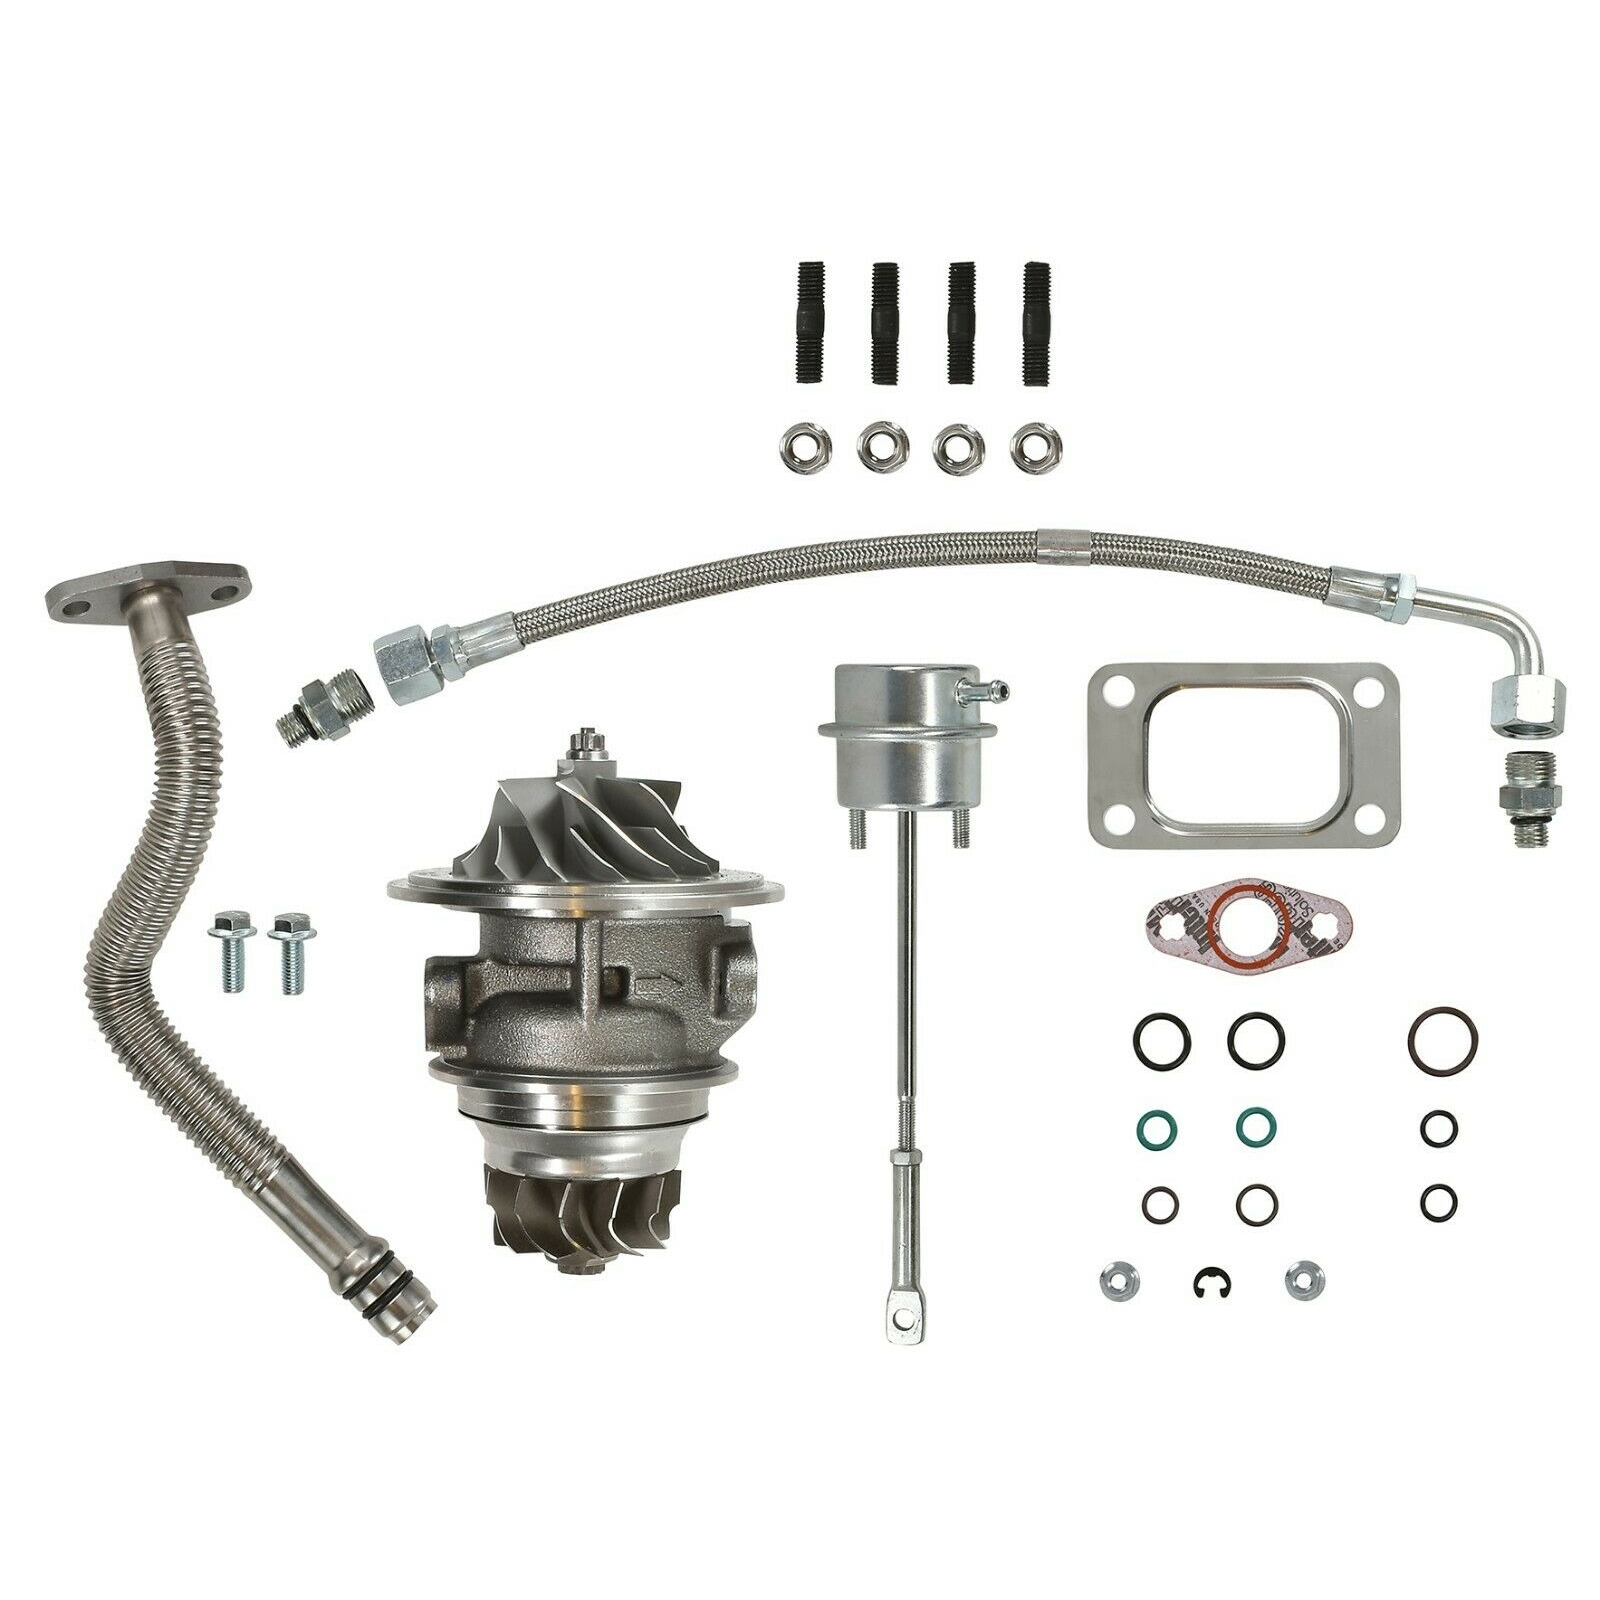 HY35W Master Turbo Rebuild Kit Cast CHRA For 03-04 5.9L Dodge Ram Cummins Diesel